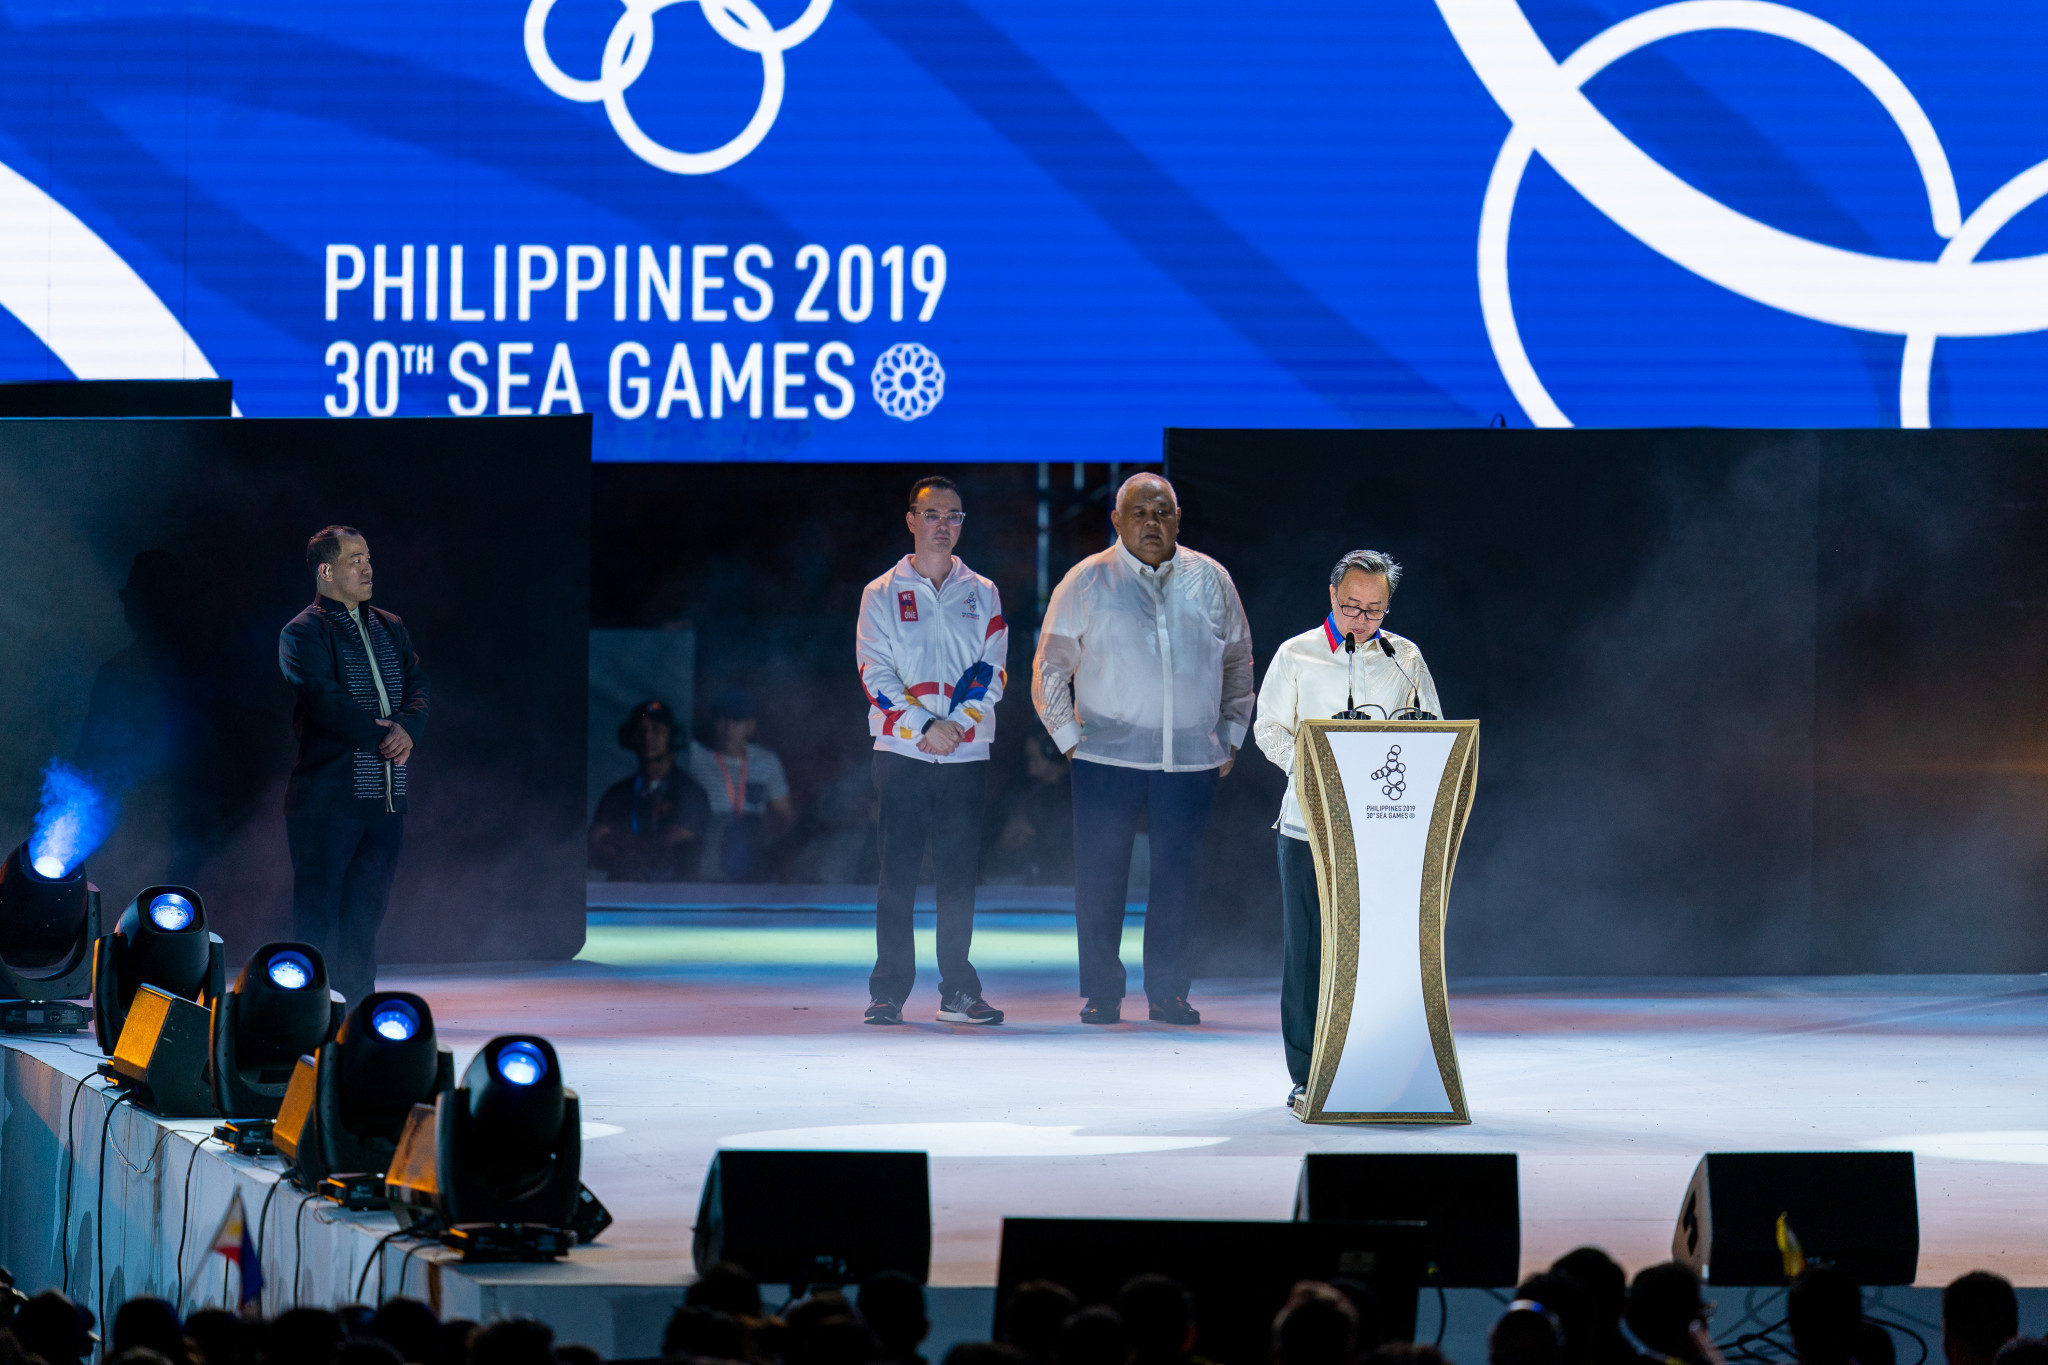 Abraham Tolentino was re-elected President of the Philippines Olympic Committee after defeating Clint Aranas by eight votes ©Getty Images